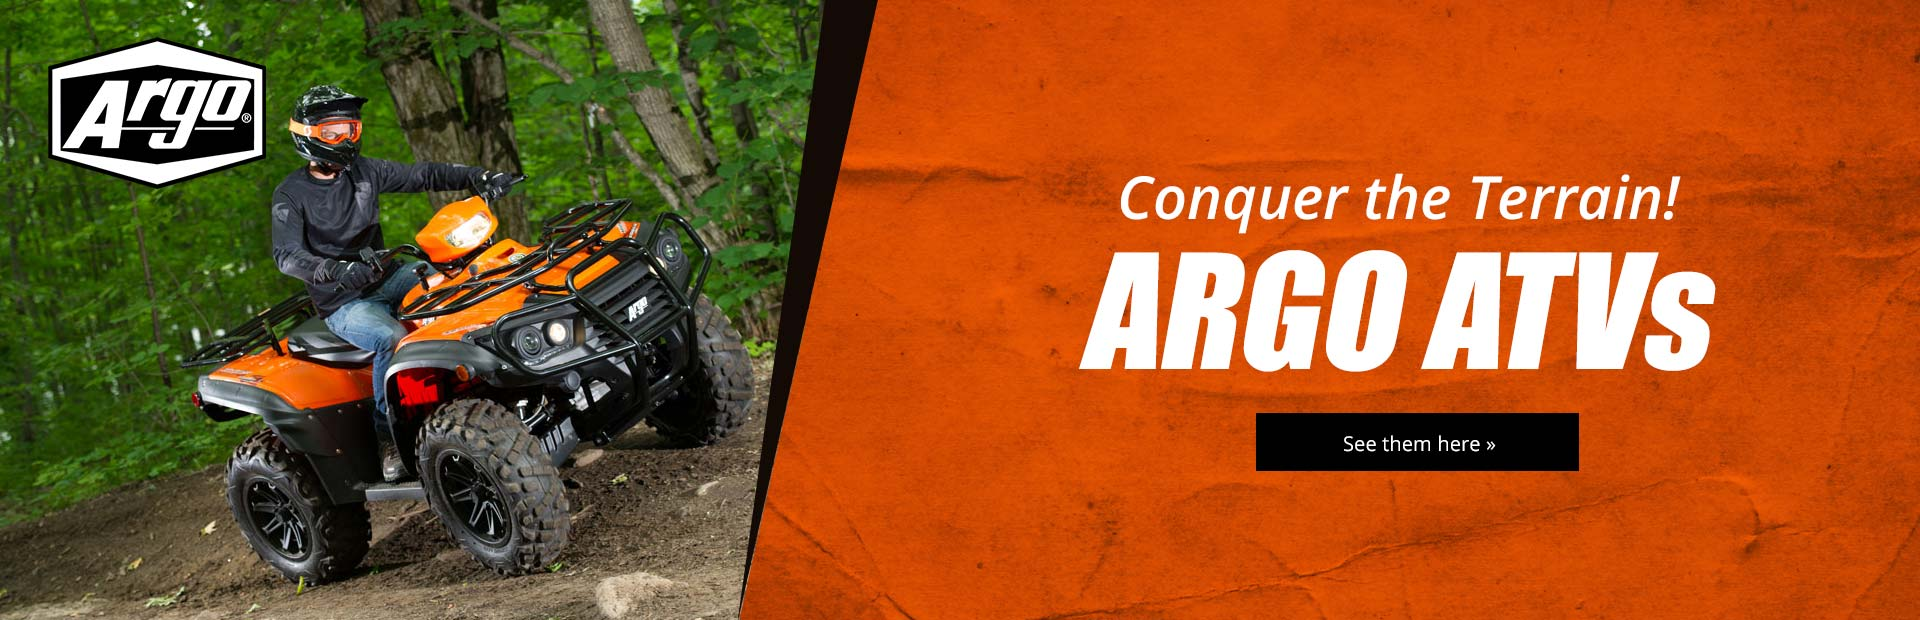 ARGO ATVs: Click here to view the models.